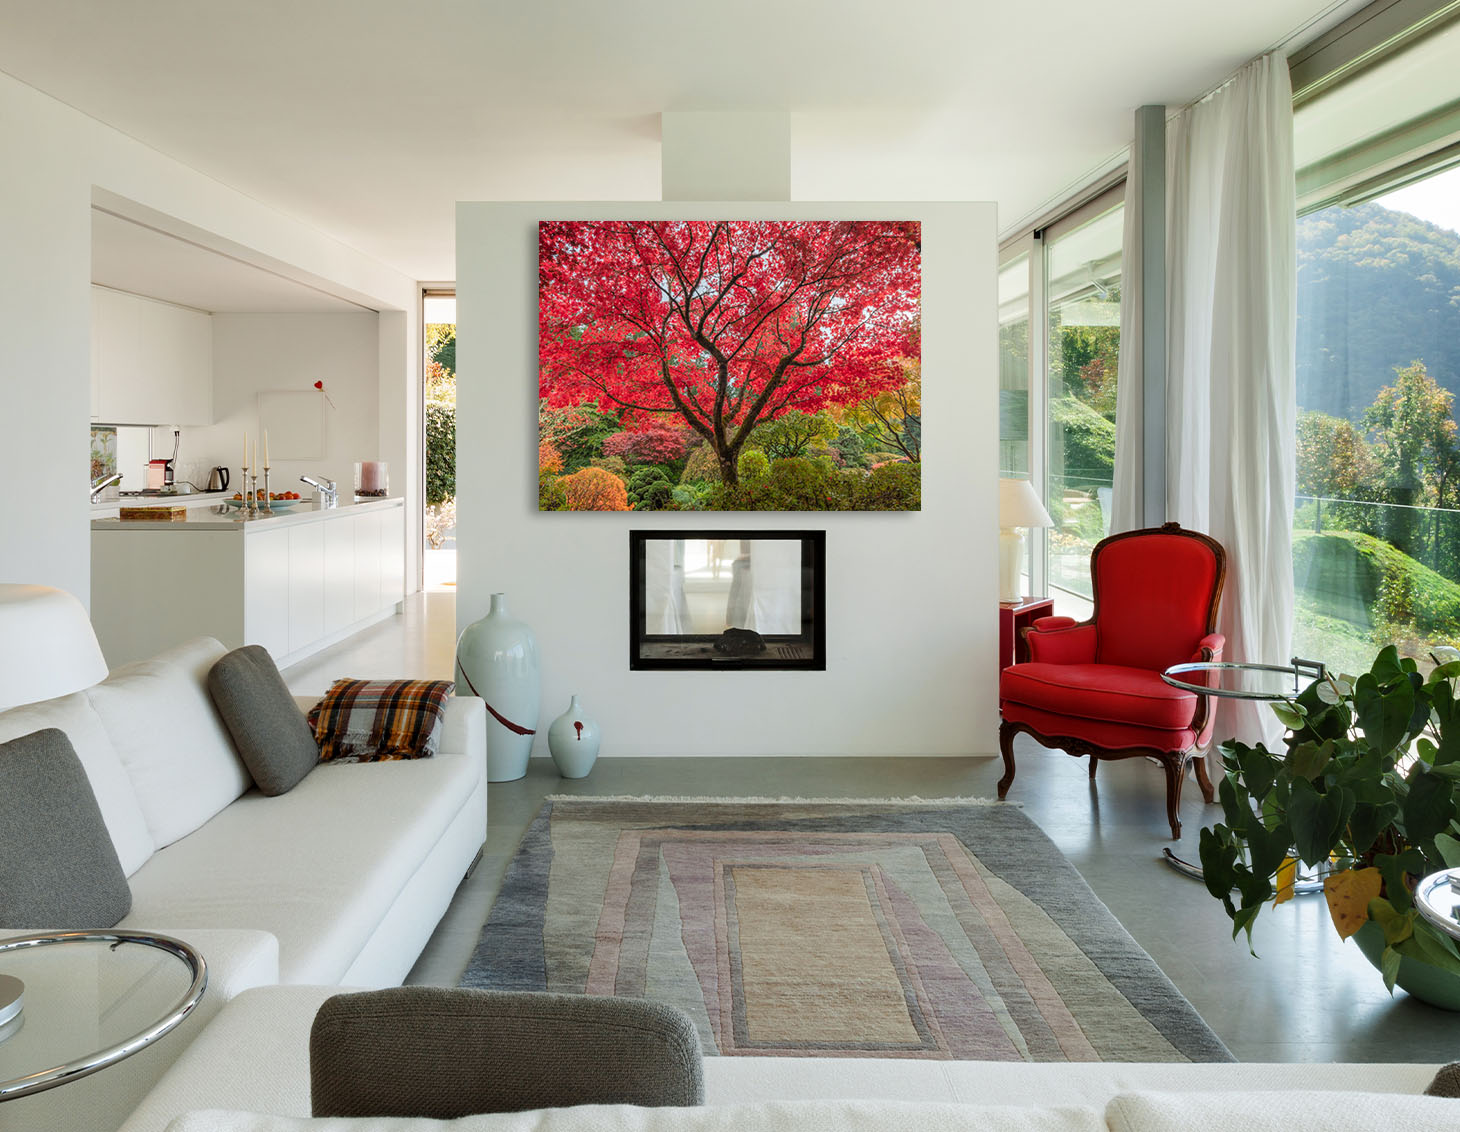 Japanese Maple Tree Artwork Fine Art home decor interior design luxury estate mansion Michael Andrejkow